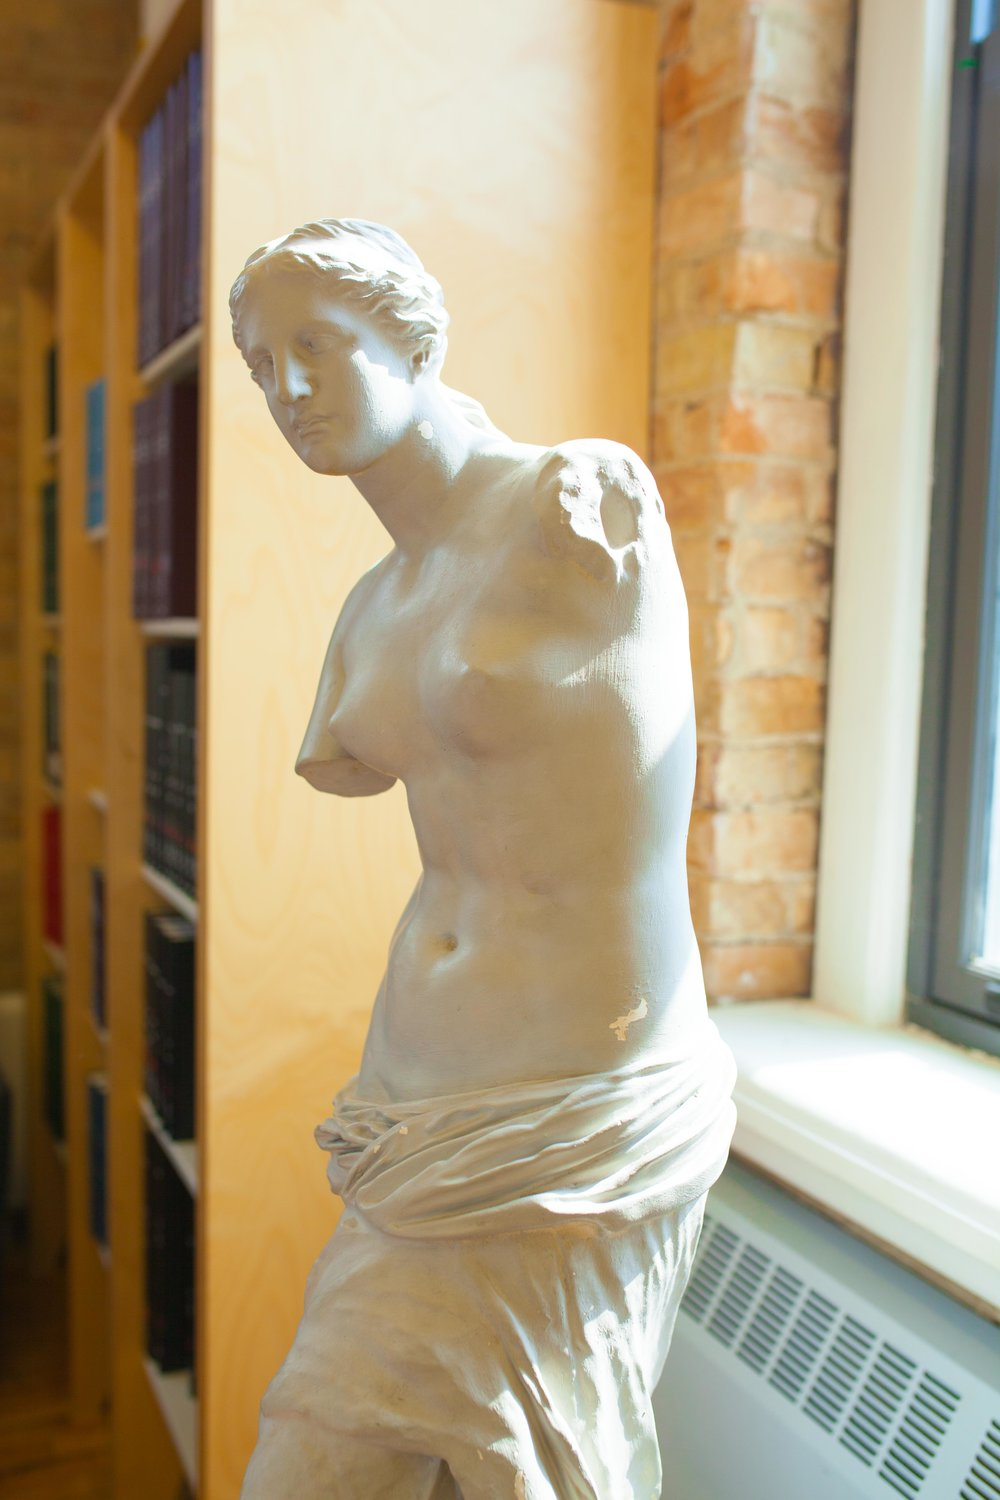 In the other section of the library (on the ground floor) one can check out magazines and this sculpture.